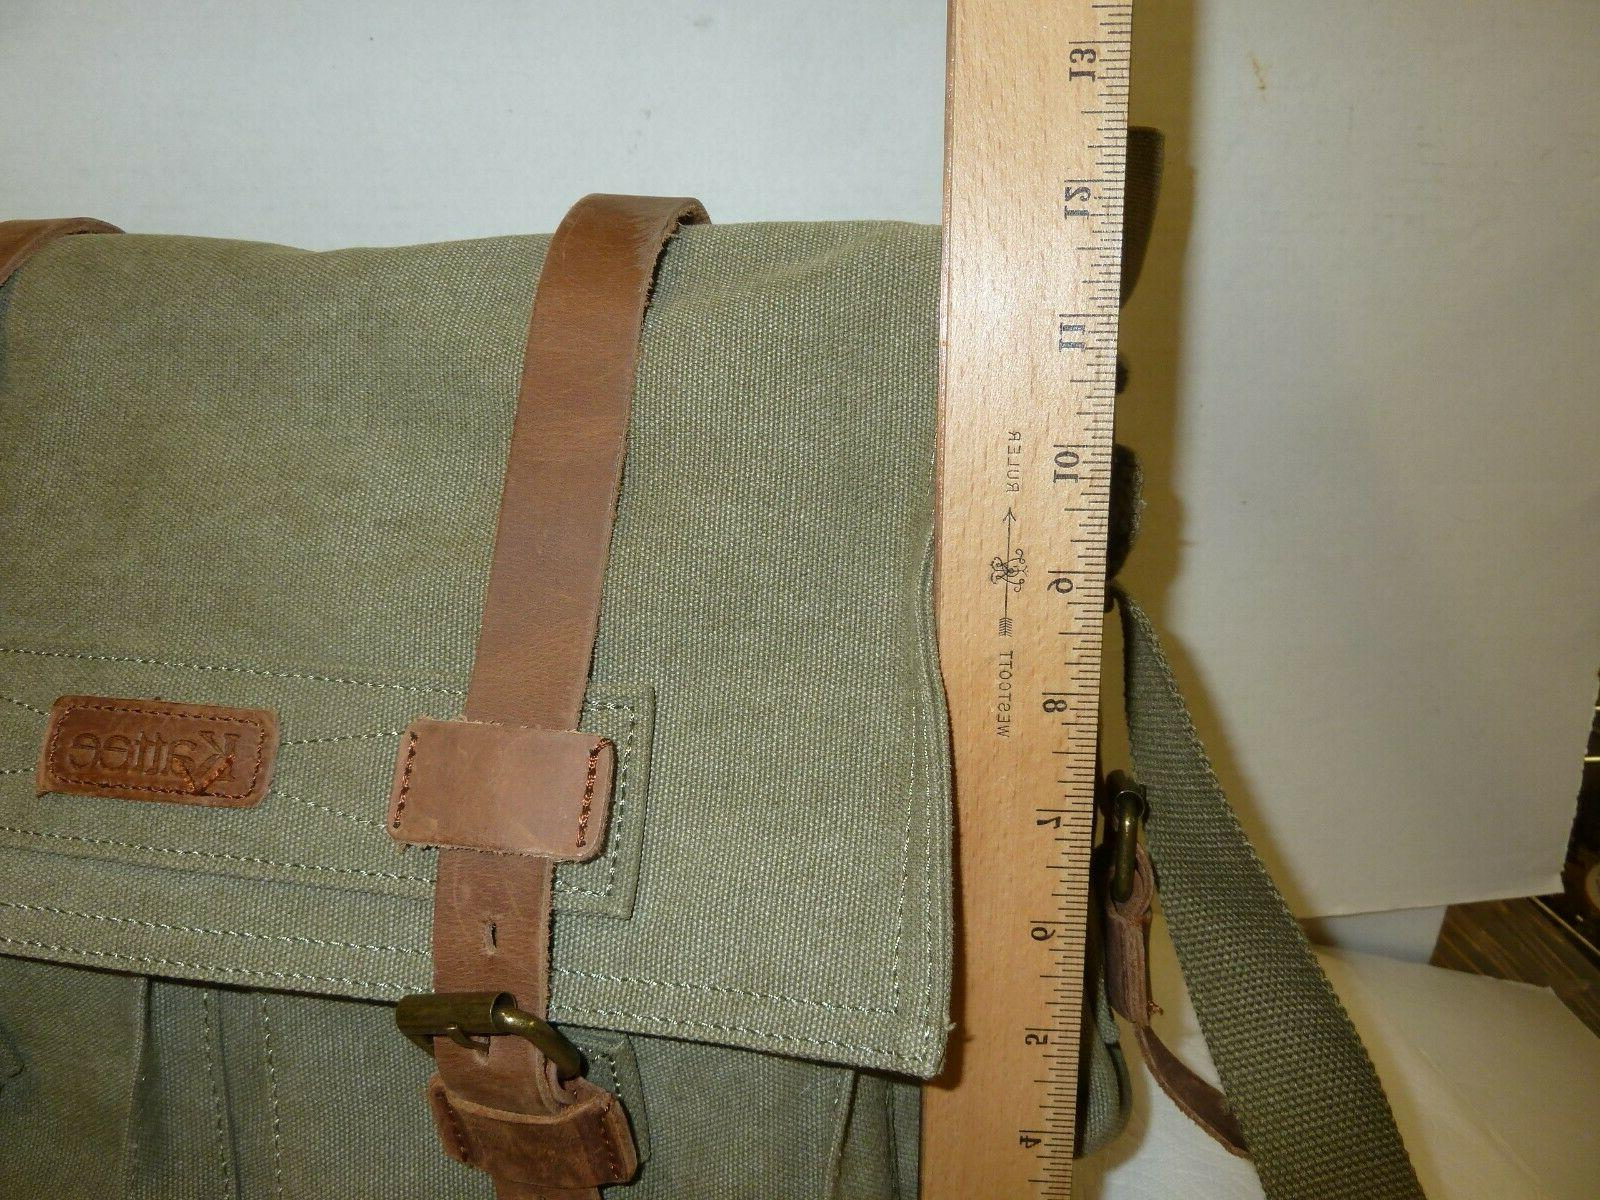 KATTEE new Canvas Leather Shoulder Bag Khaki WITH TAGS